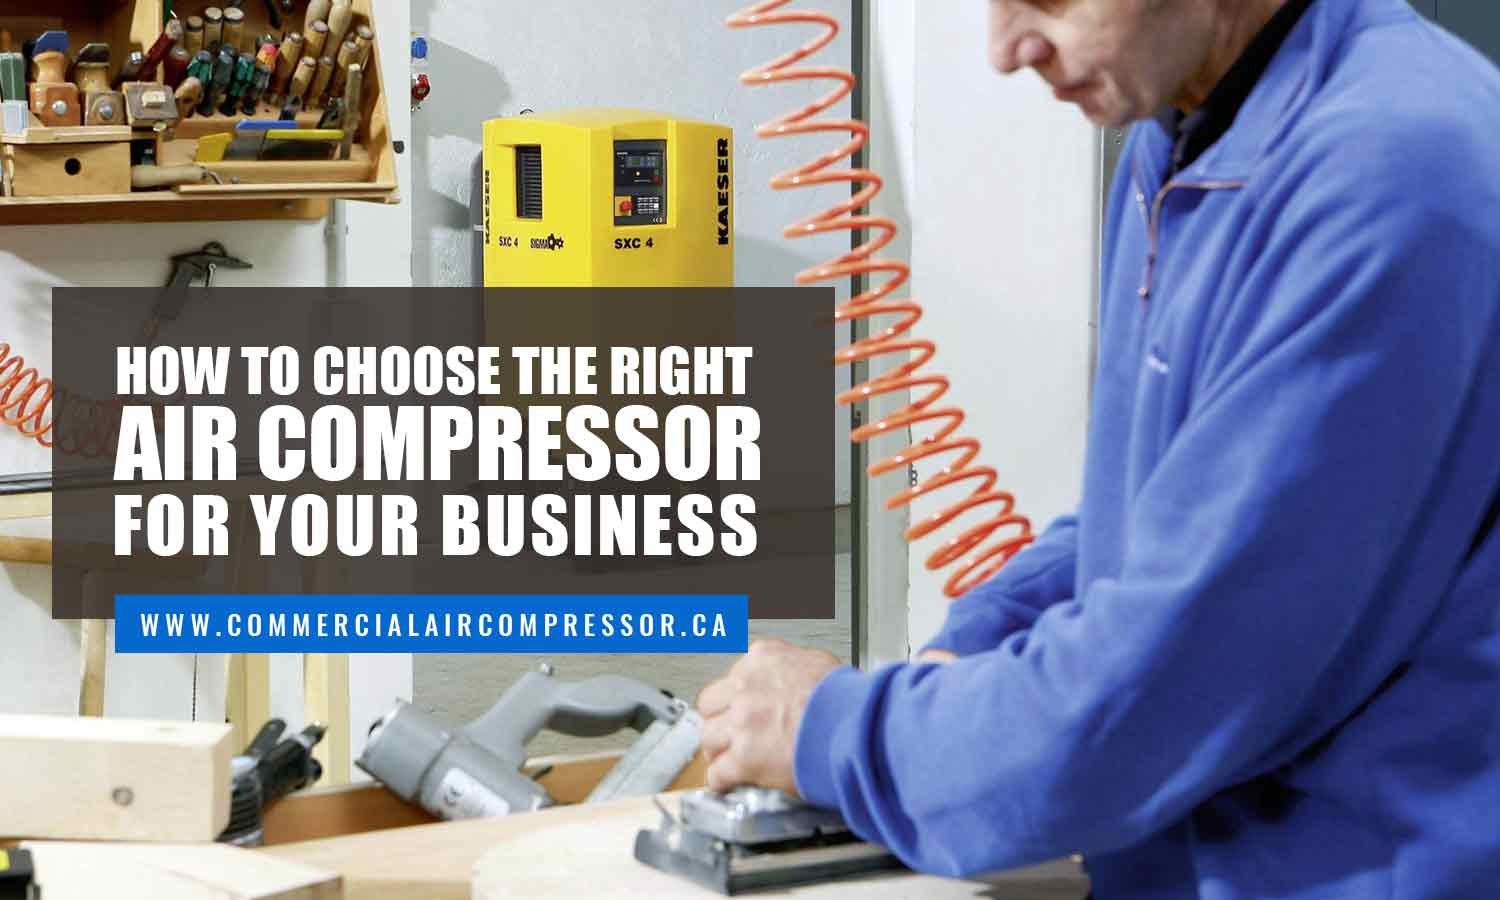 How to Choose the Right Air Compressor for Your Business